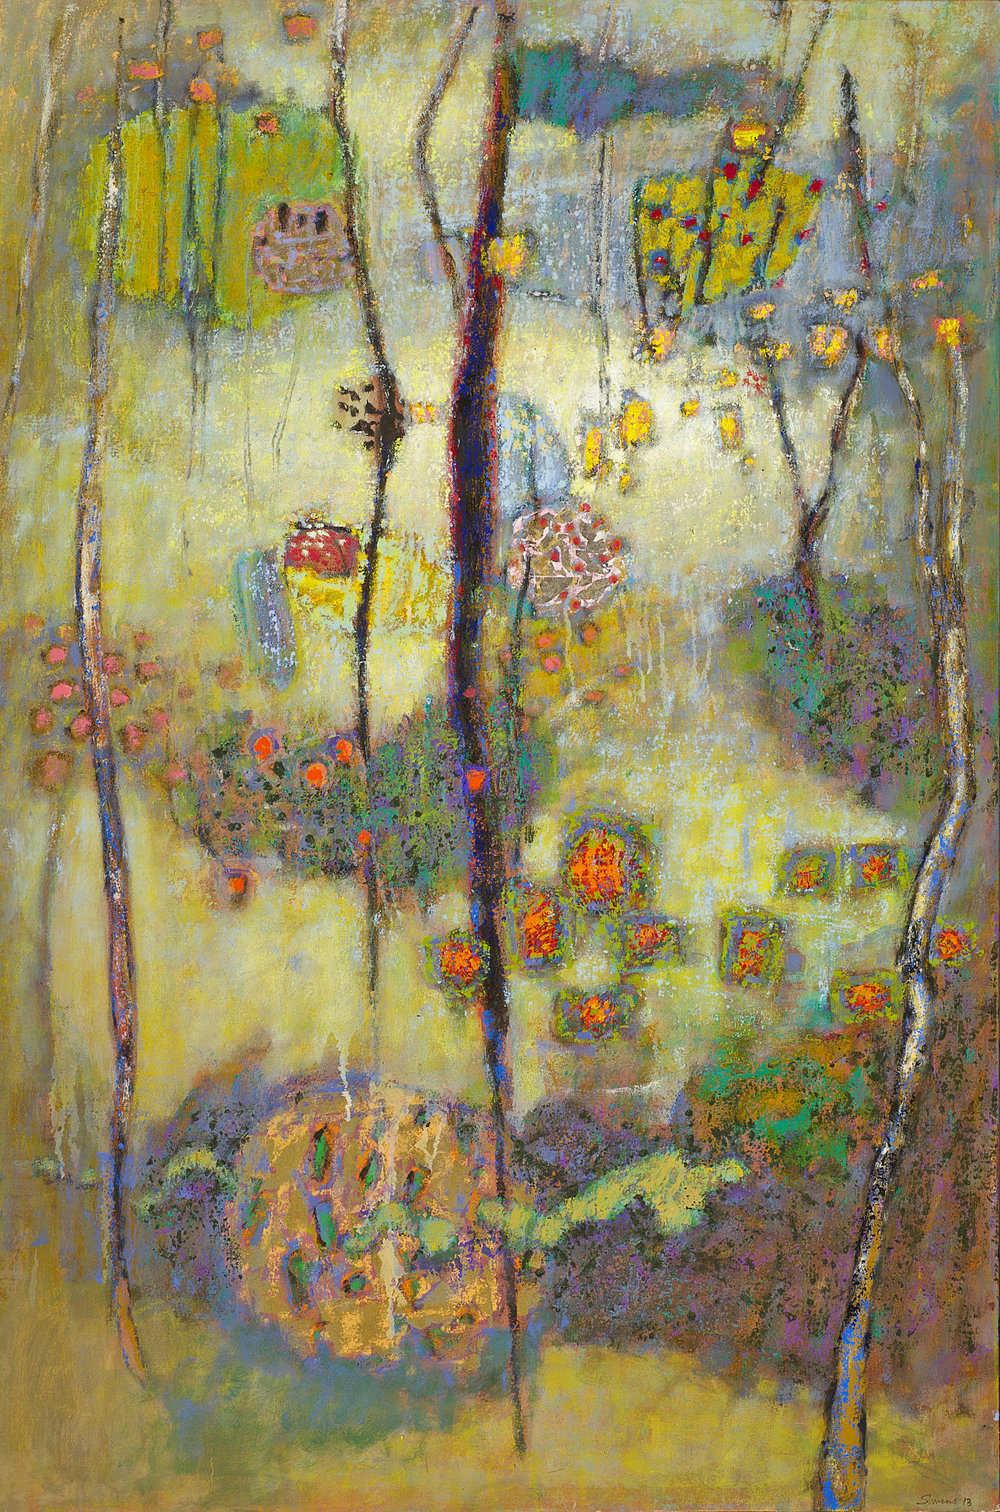 The Wonder of it All | oil on canvas | 48 x 32"